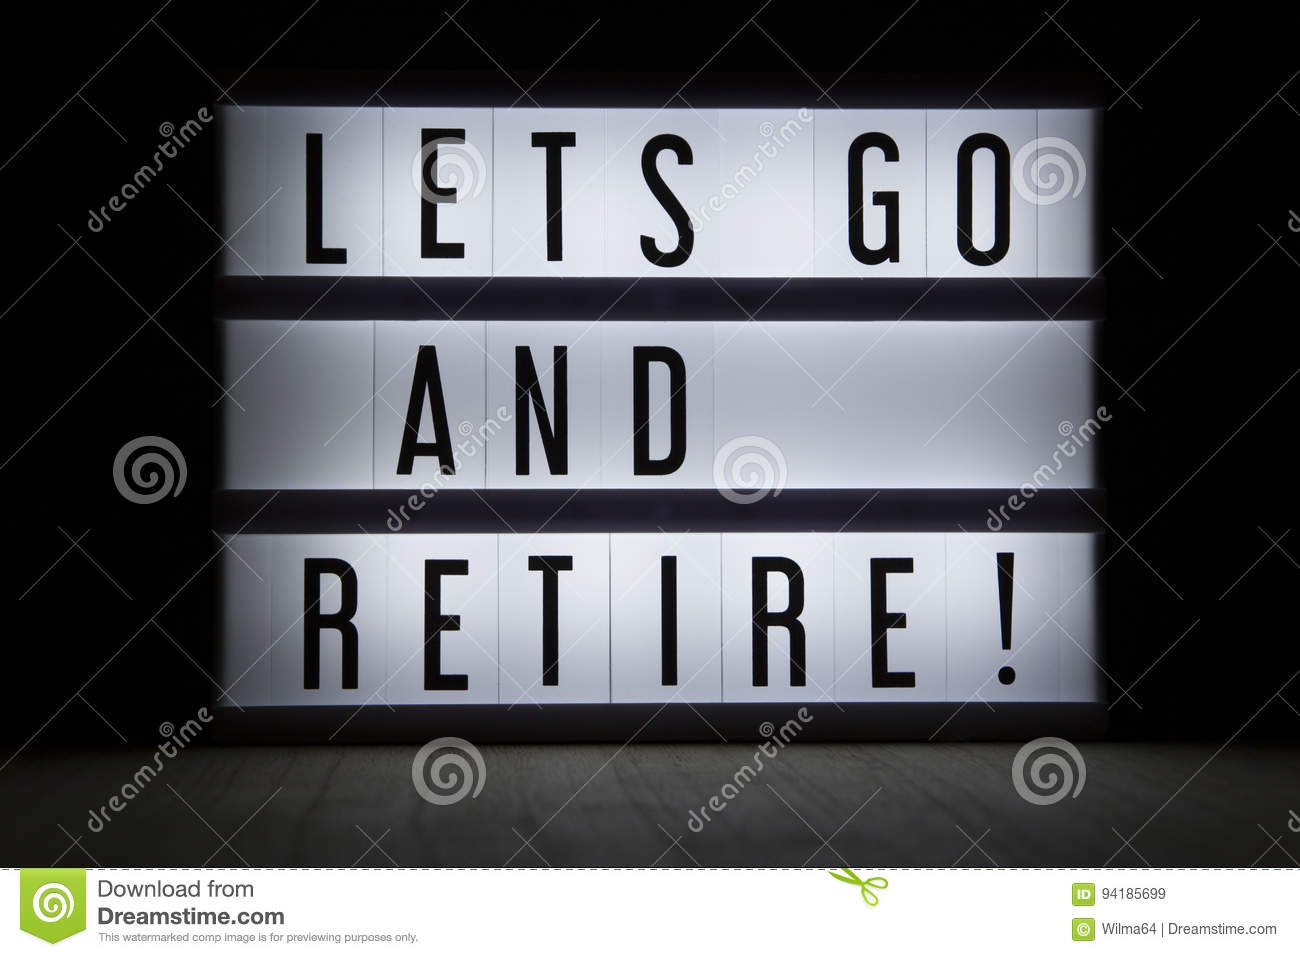 Lets go and retire